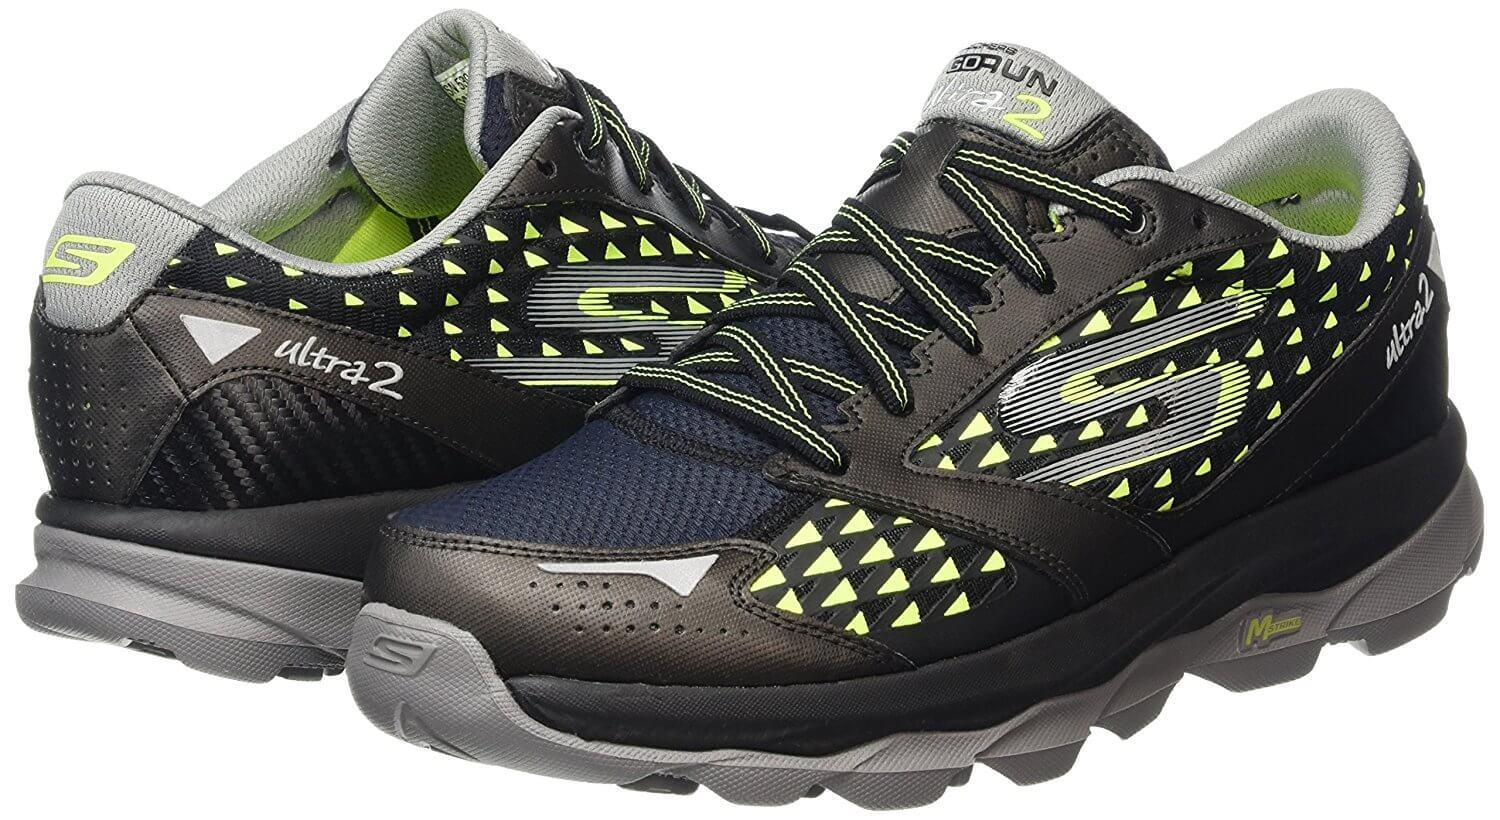 A pair of the Skechers GOrun Ultra 2 Running Shoes